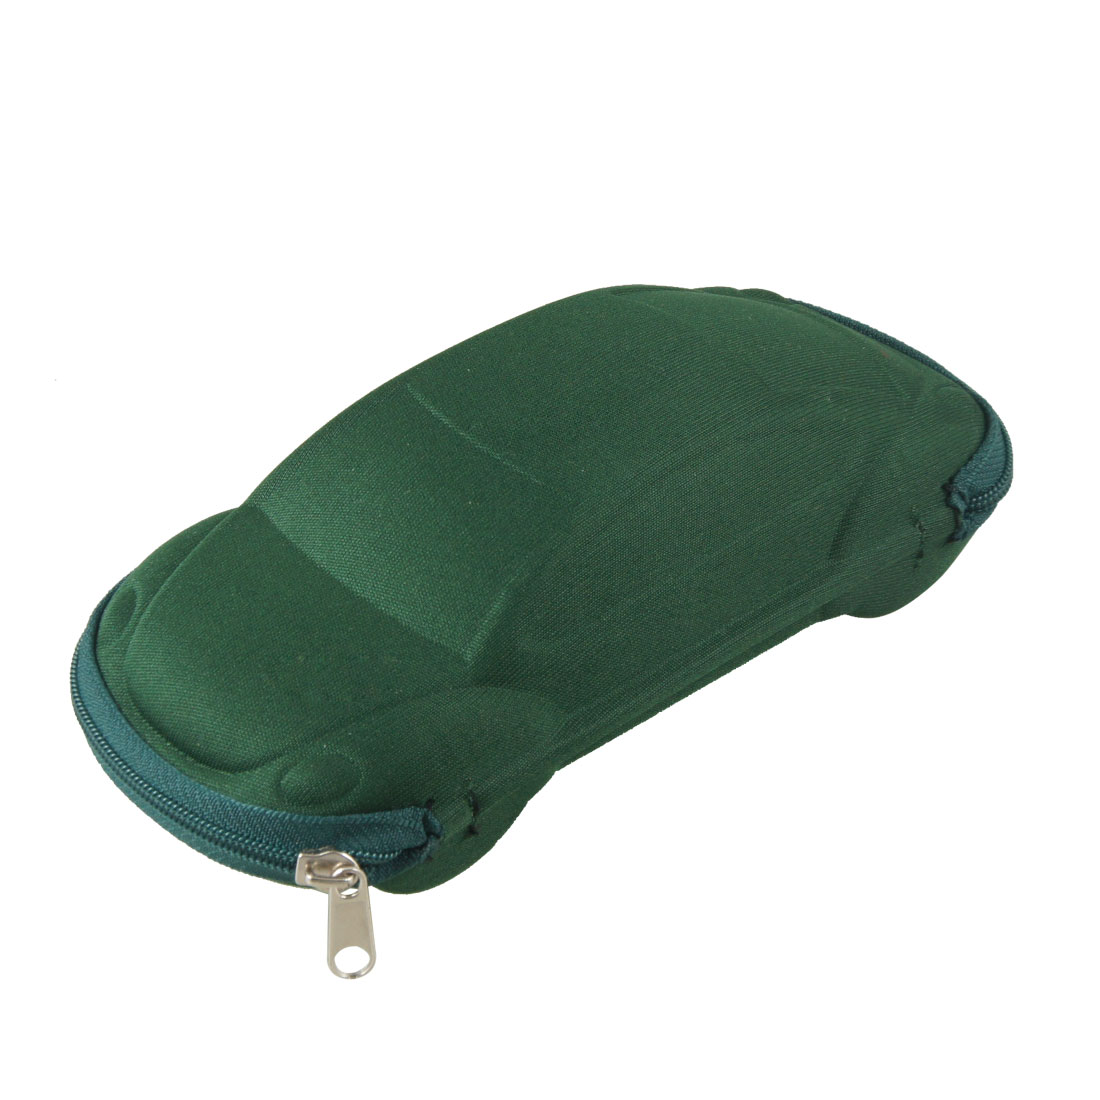 Zippered Nylon Coated Car Plain Glasses Eyeglasses Case Box Holder Dark Green